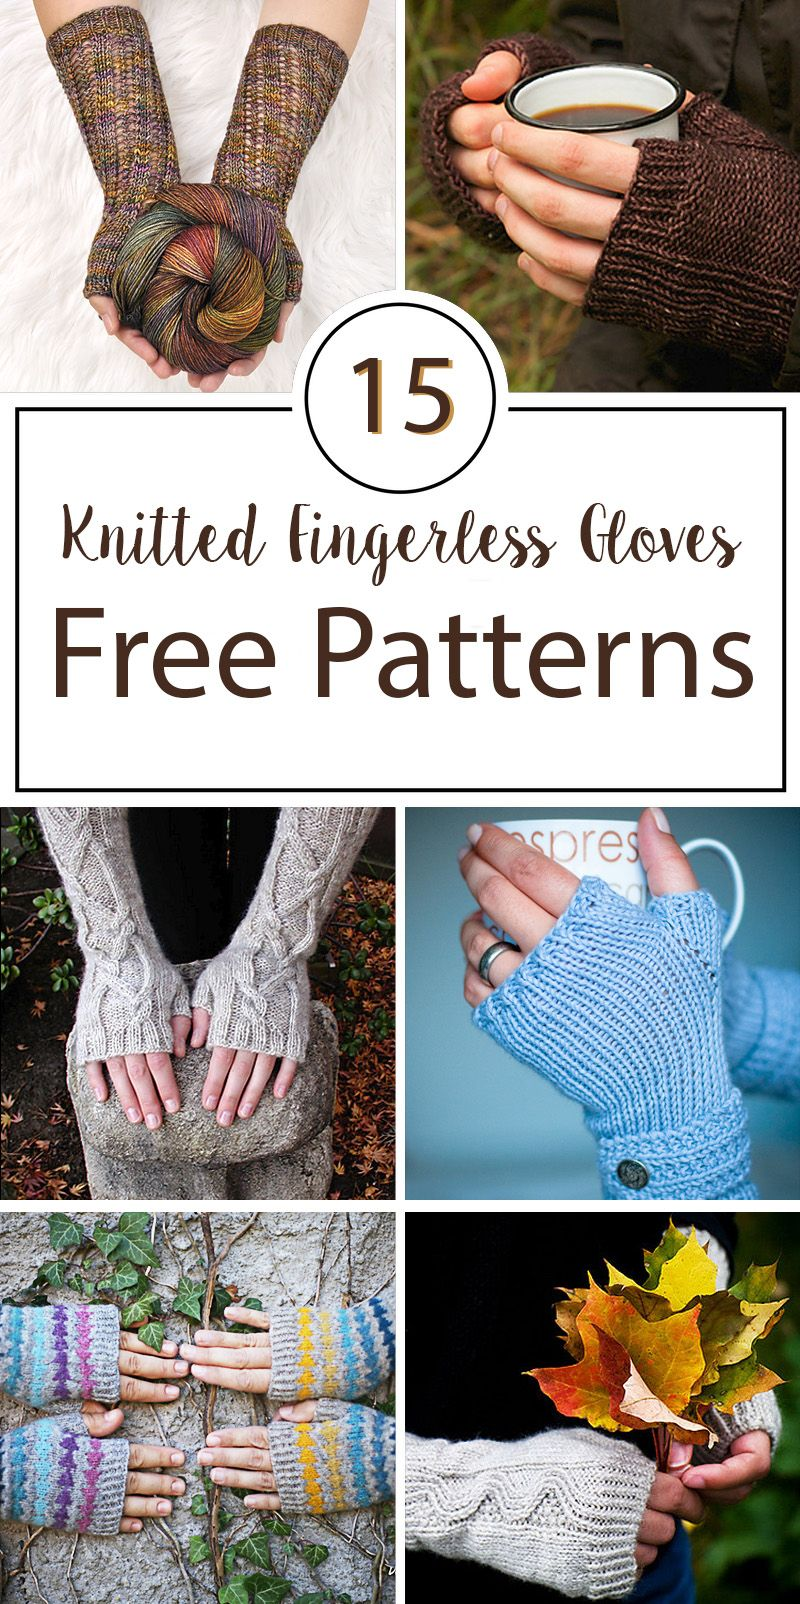 Knitted Fingerless Gloves Free Patterns | crafts | Pinterest